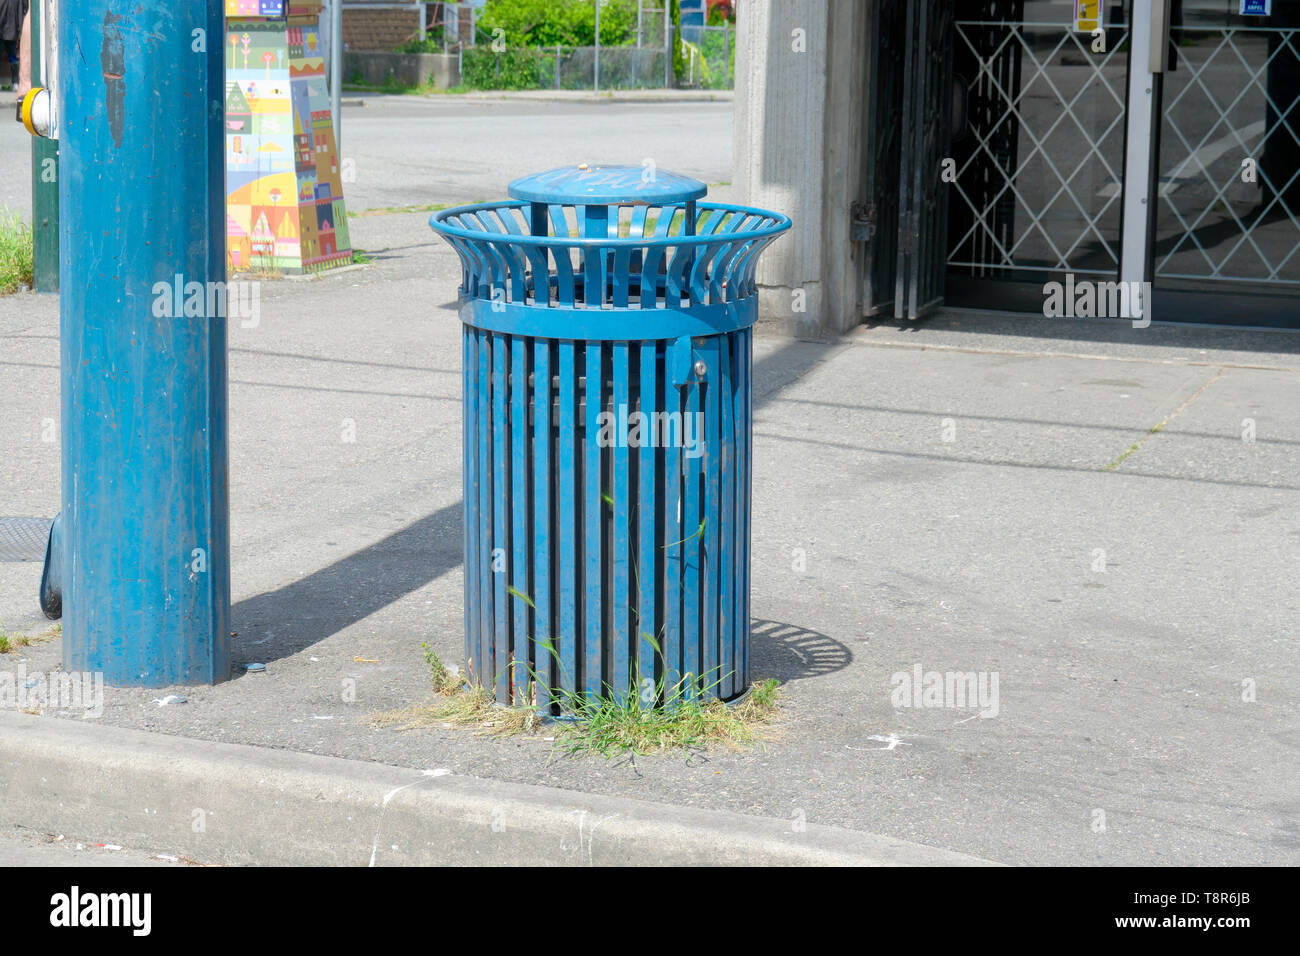 A blue garbage receptacle and matching pole on a city street in Vancouver, British Columbia, Canada. - Stock Image